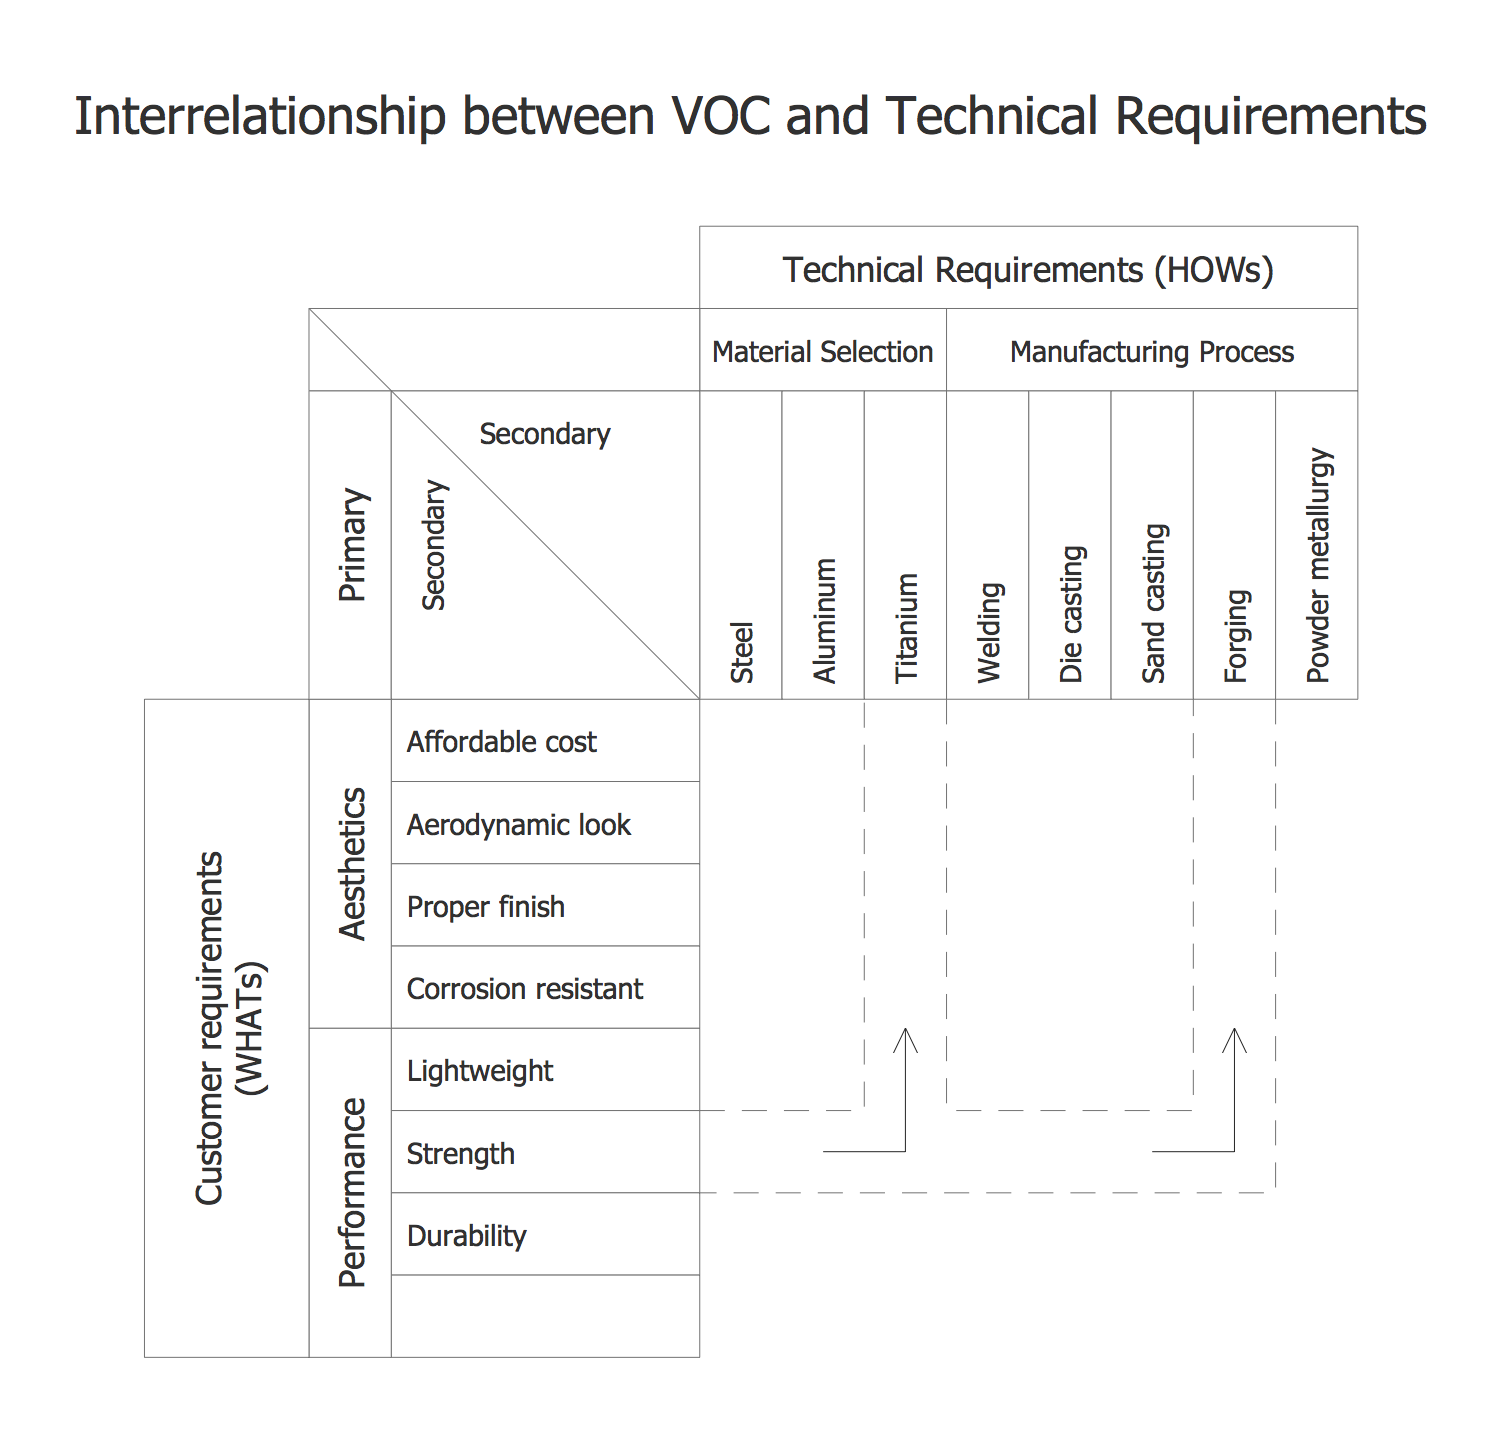 House of Quality VOC vs Technical Requirements